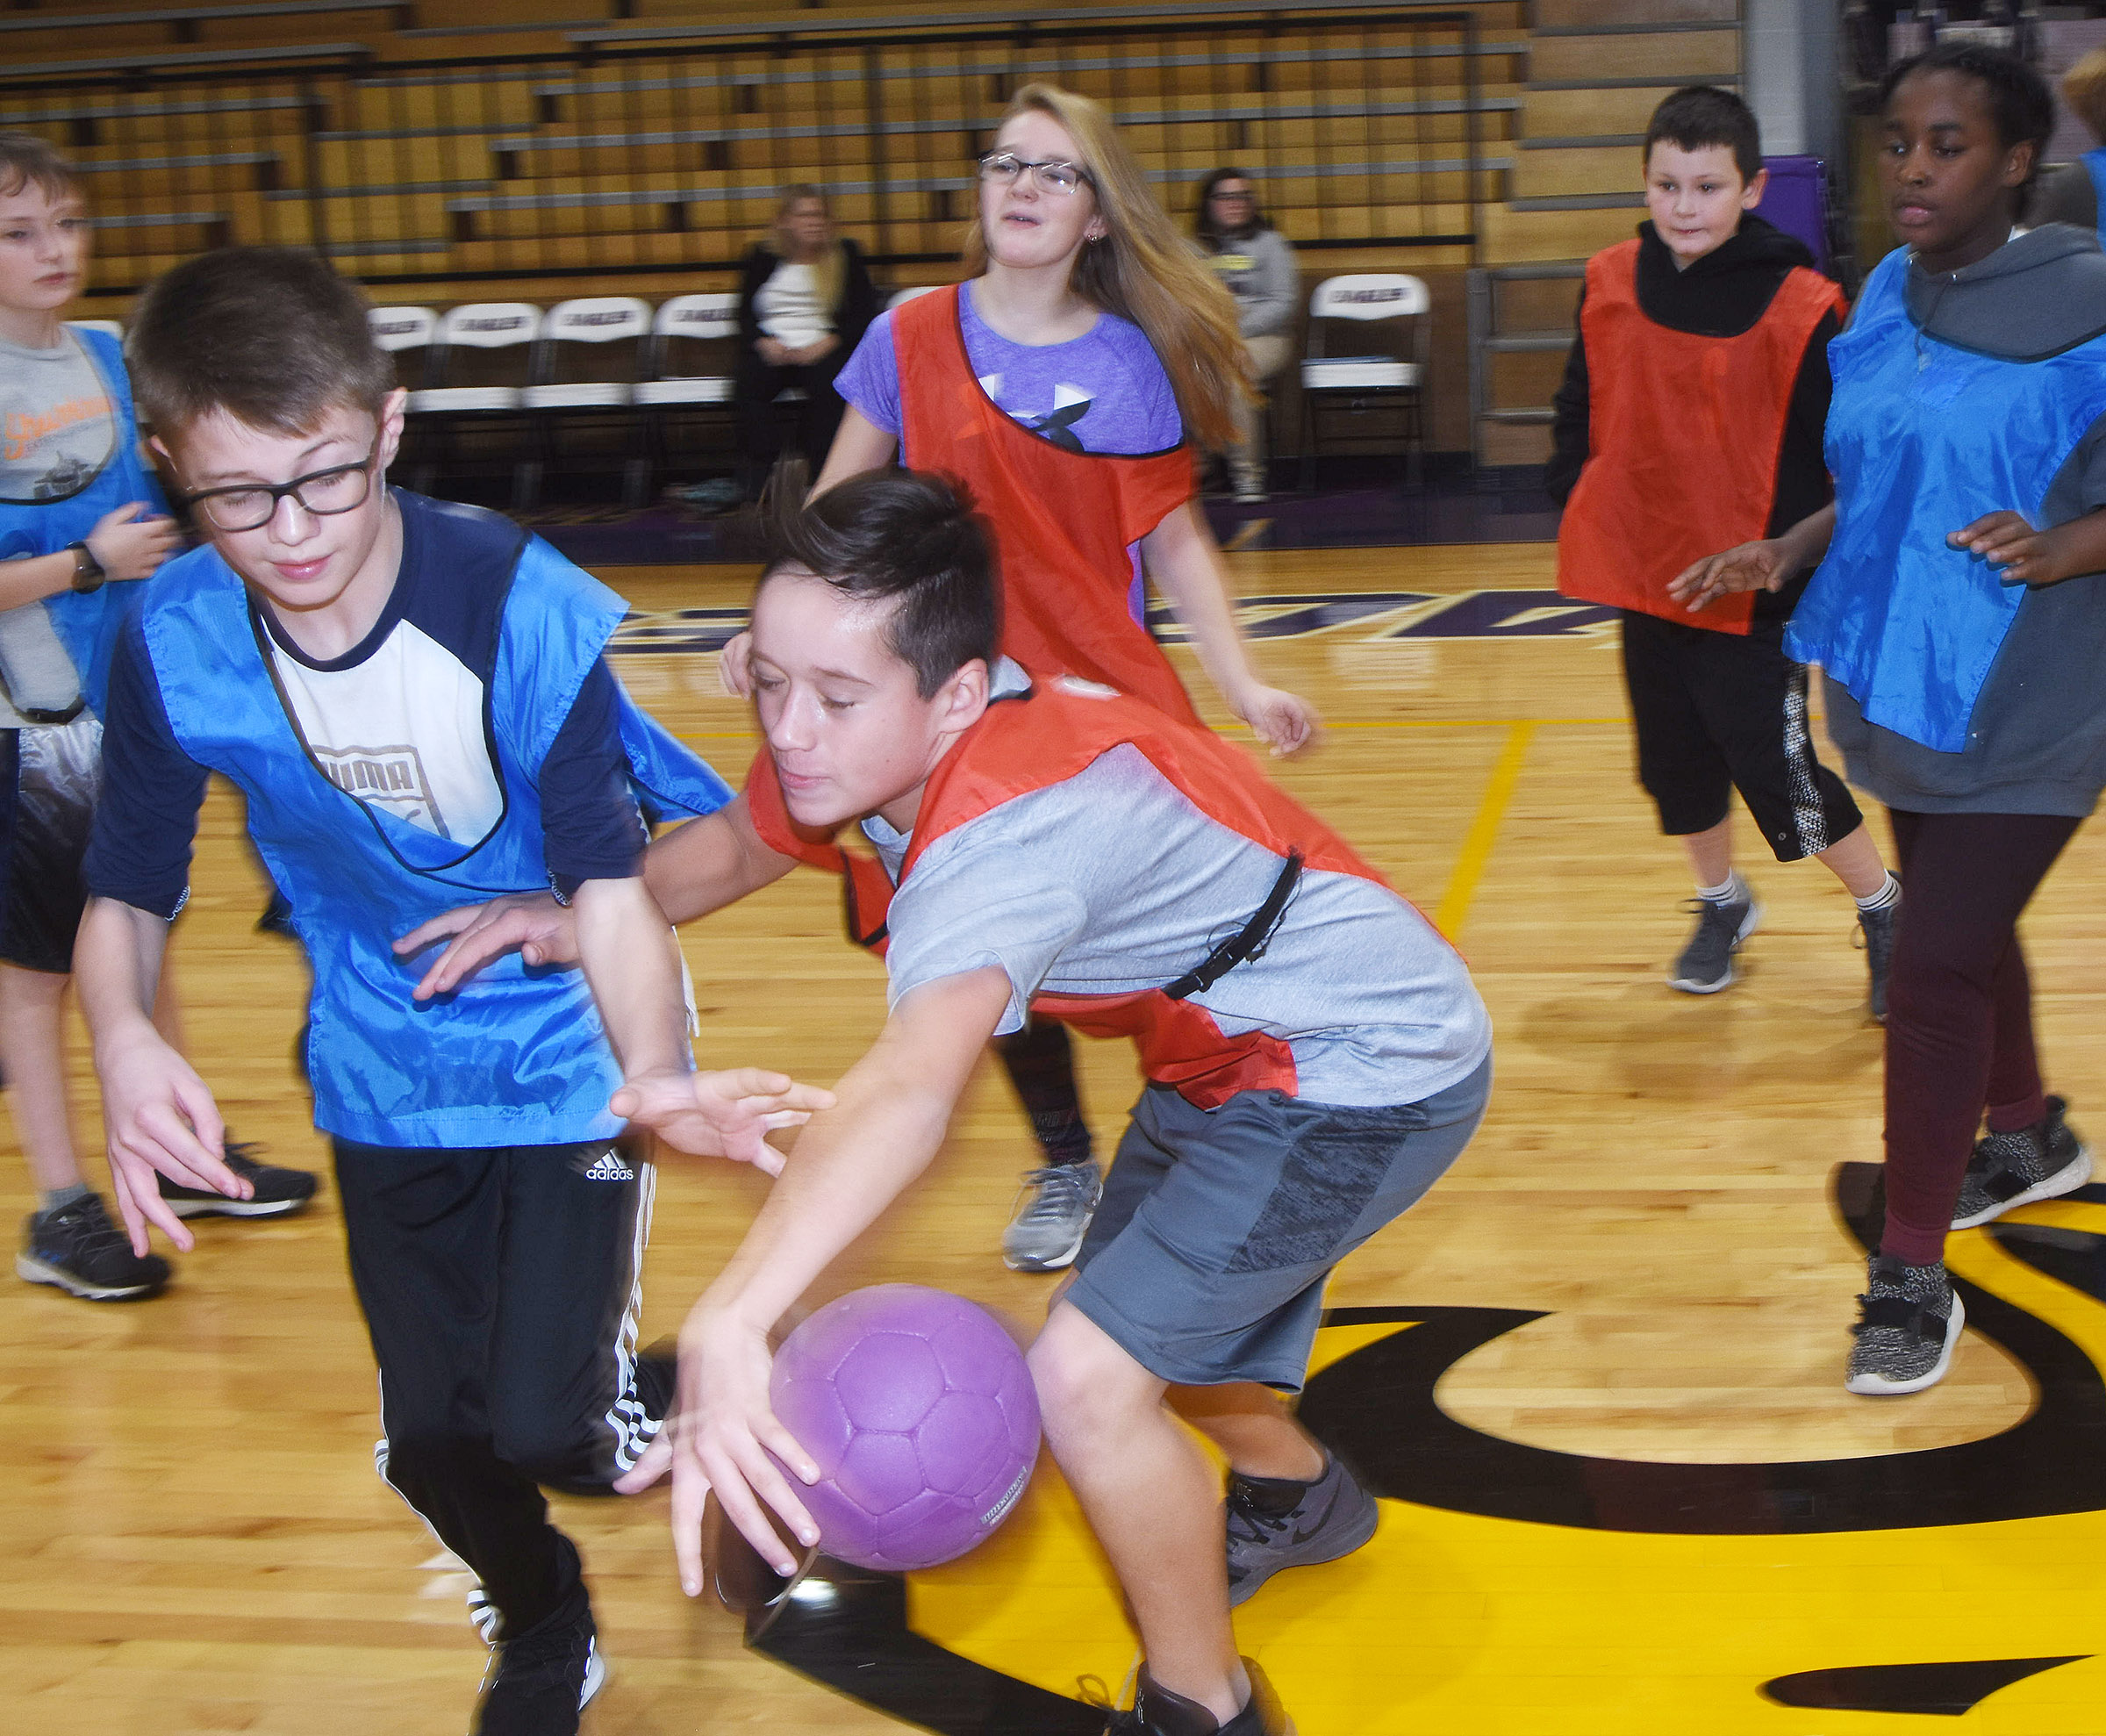 CMS sixth-grader Katon Cox protects the ball from classmate Ethan Murphy.